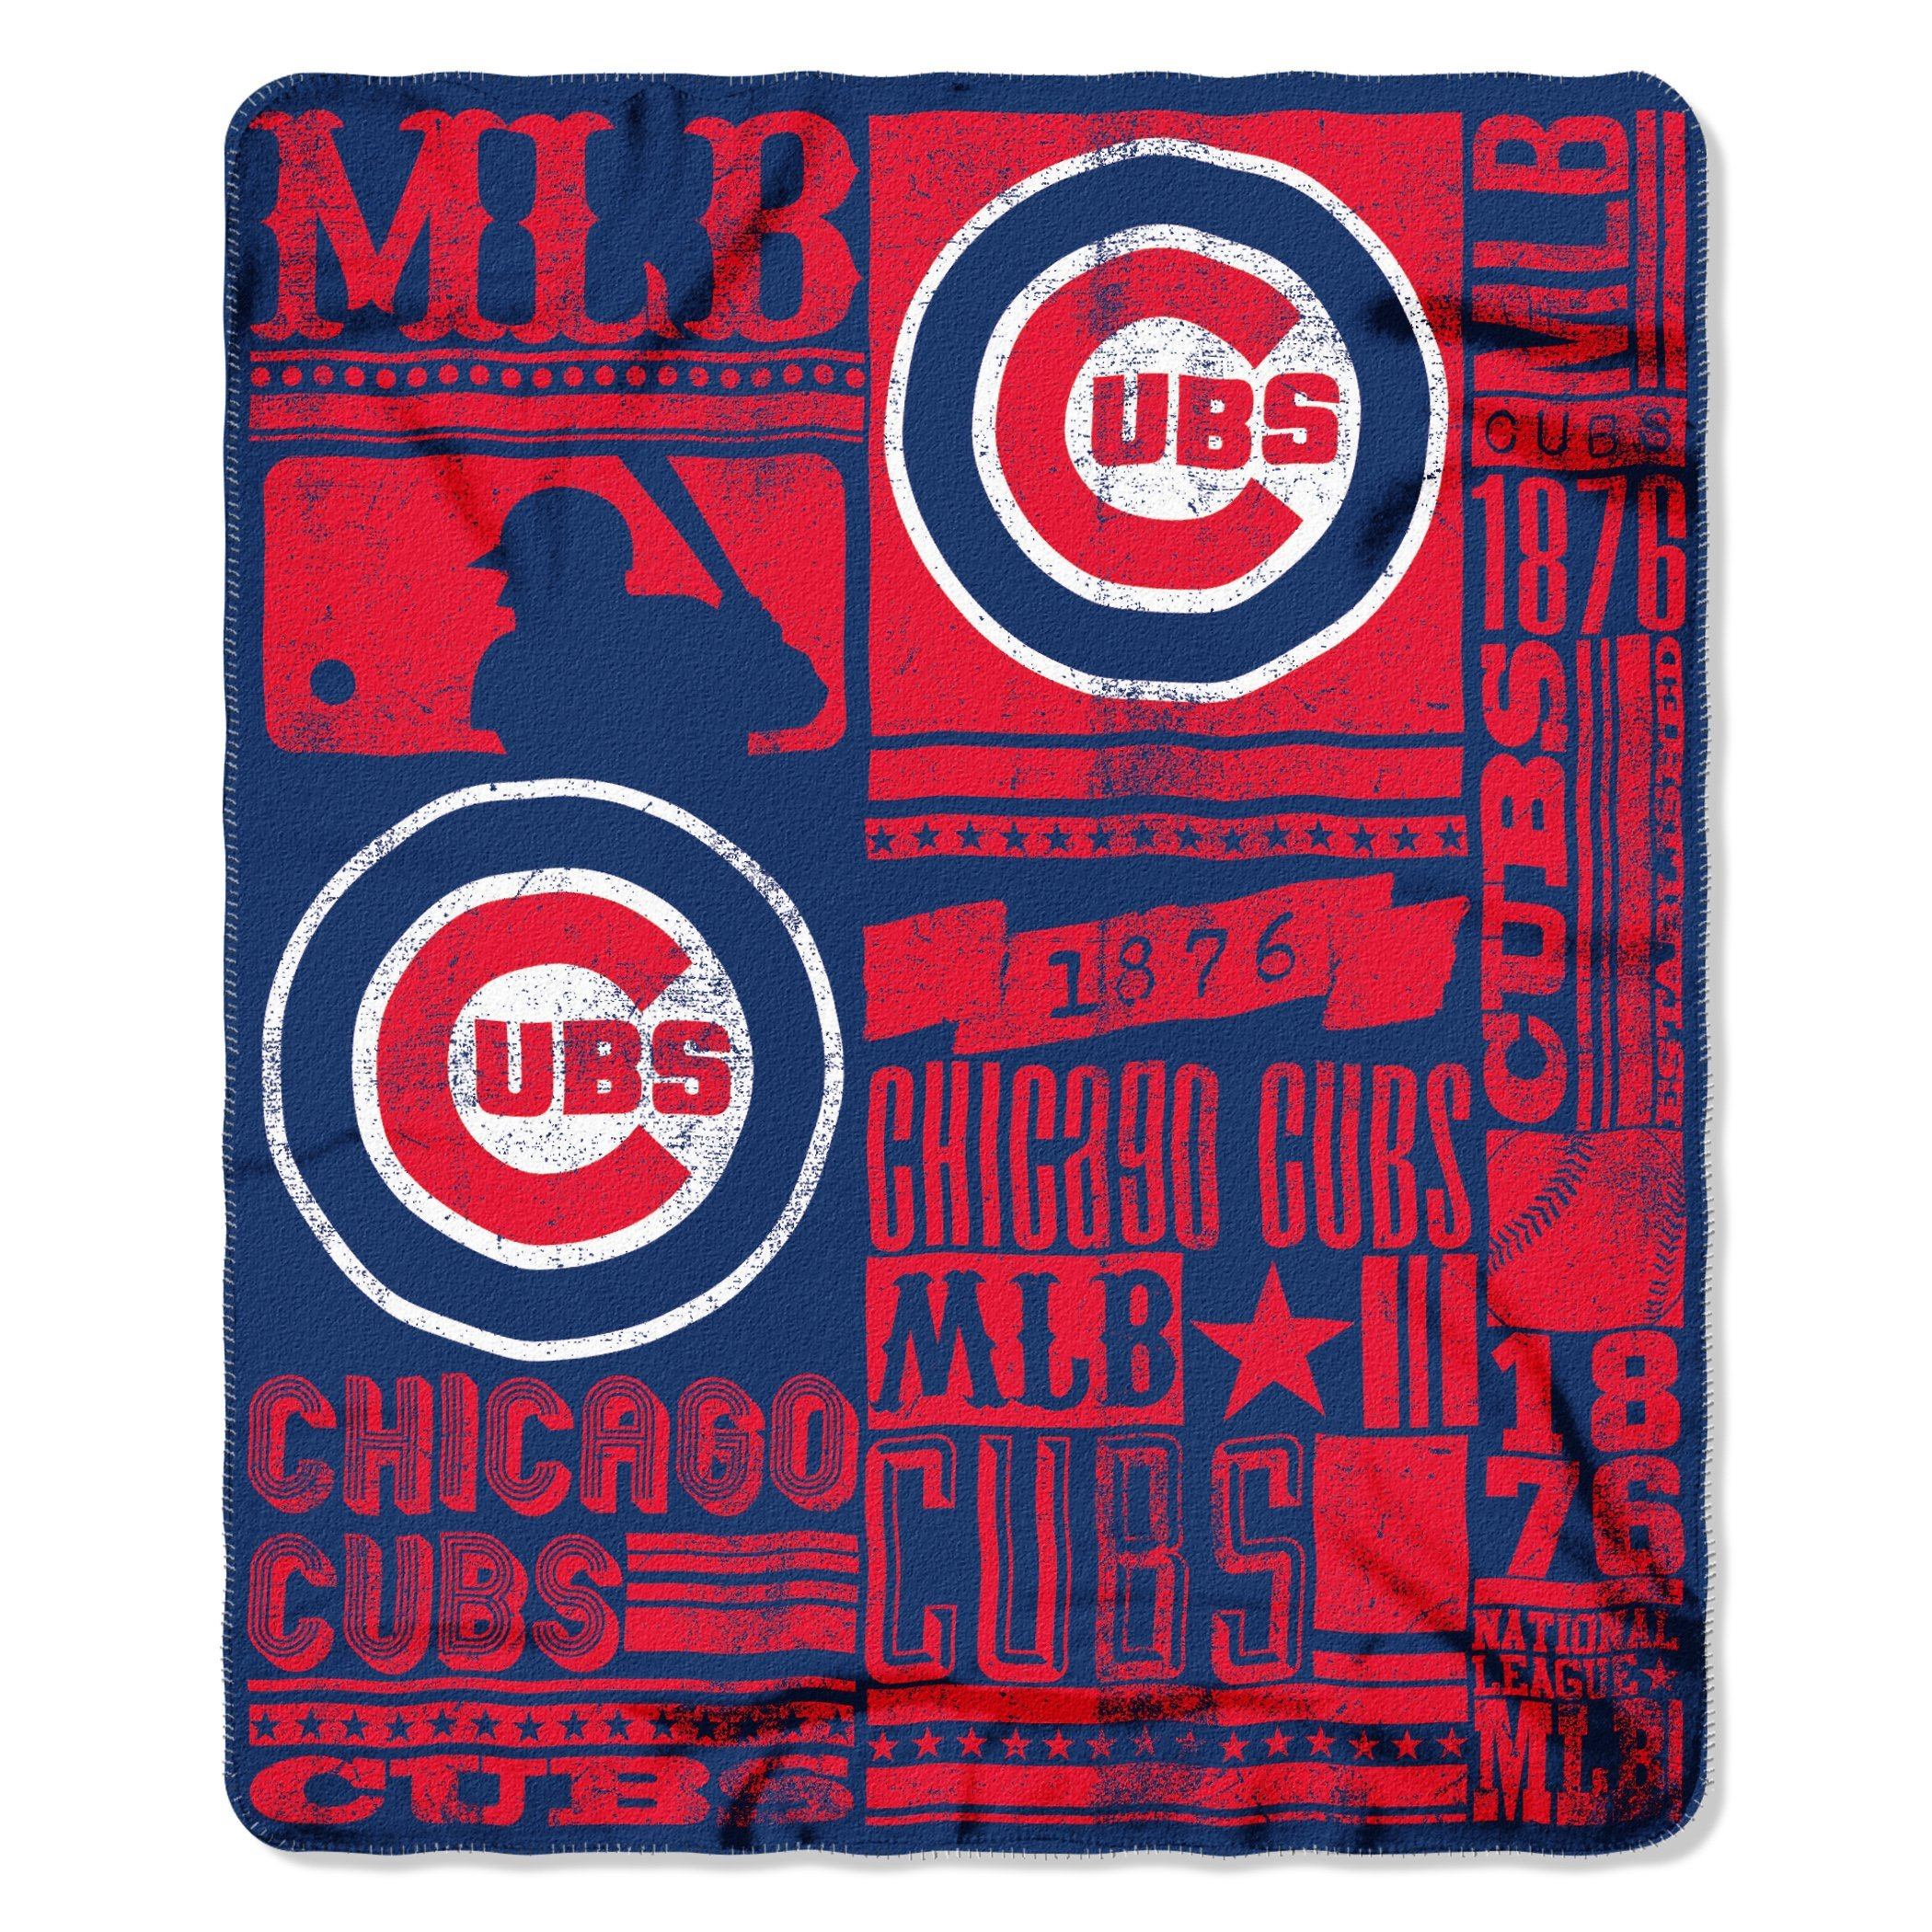 The Northwest Company (NW-203778) MLB Chicago Cubs Strength Printed Fleece Throw, 50-inch by 60-inch by The Northwest Company